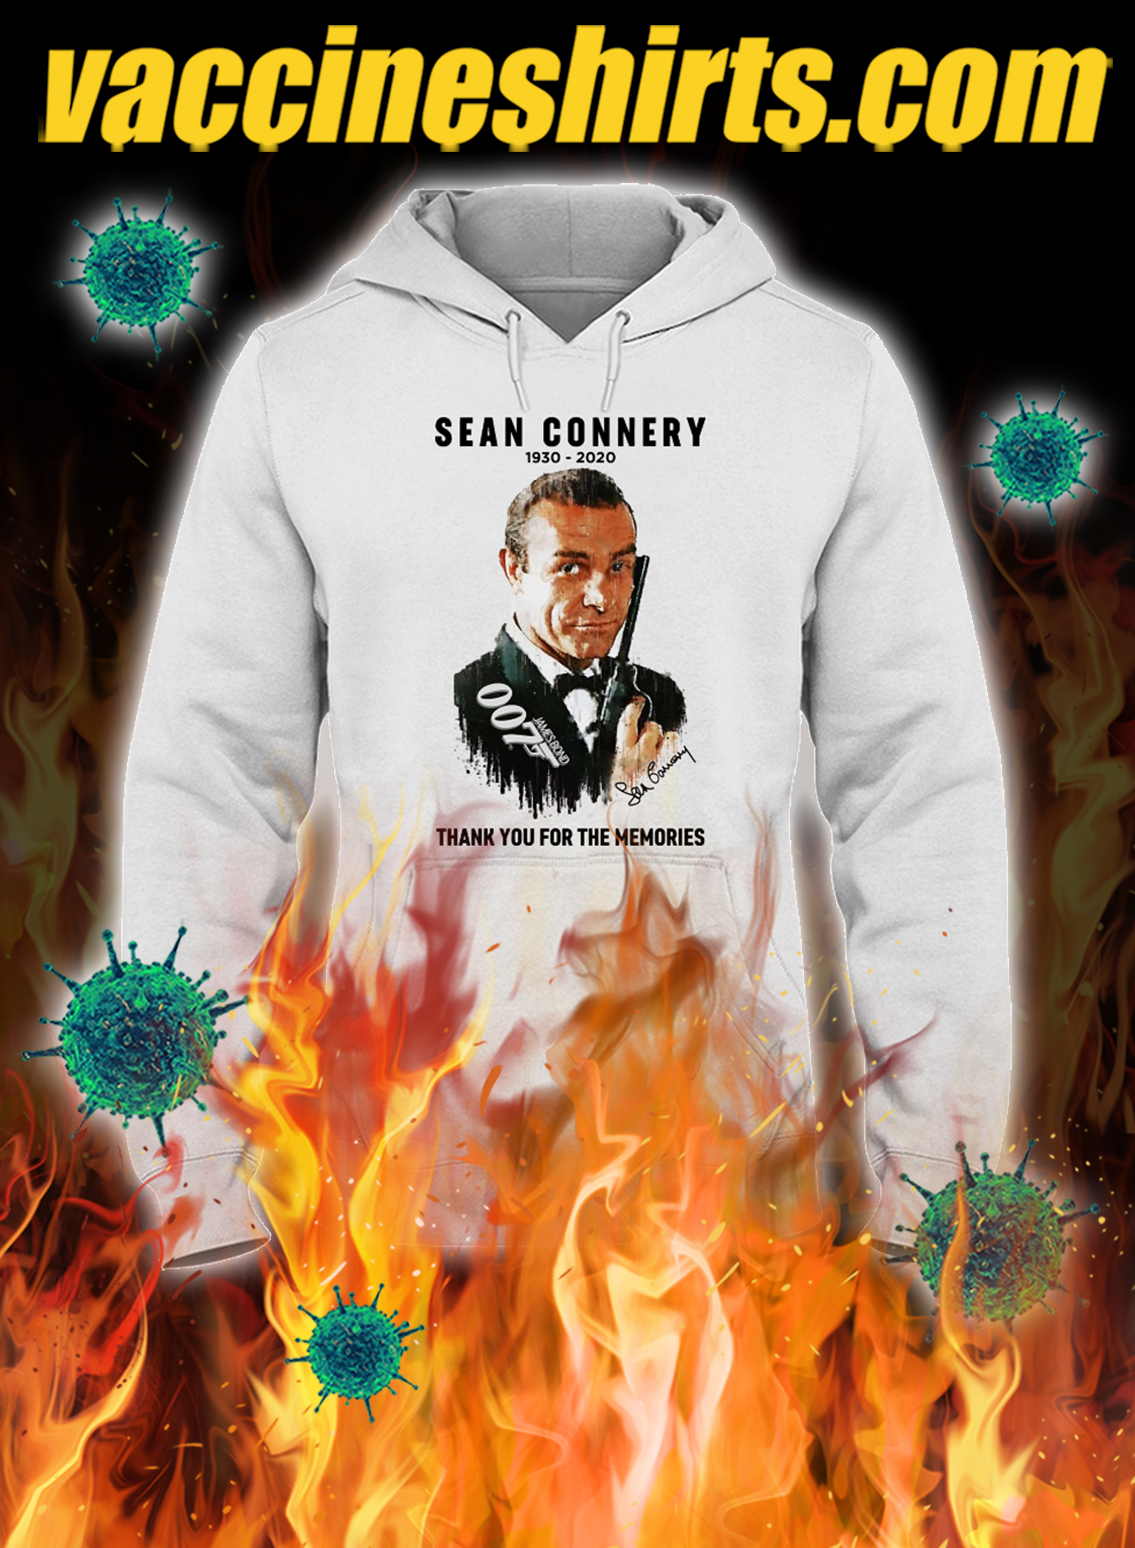 Sean connery 1930 2020 thank you for the memories hoodie